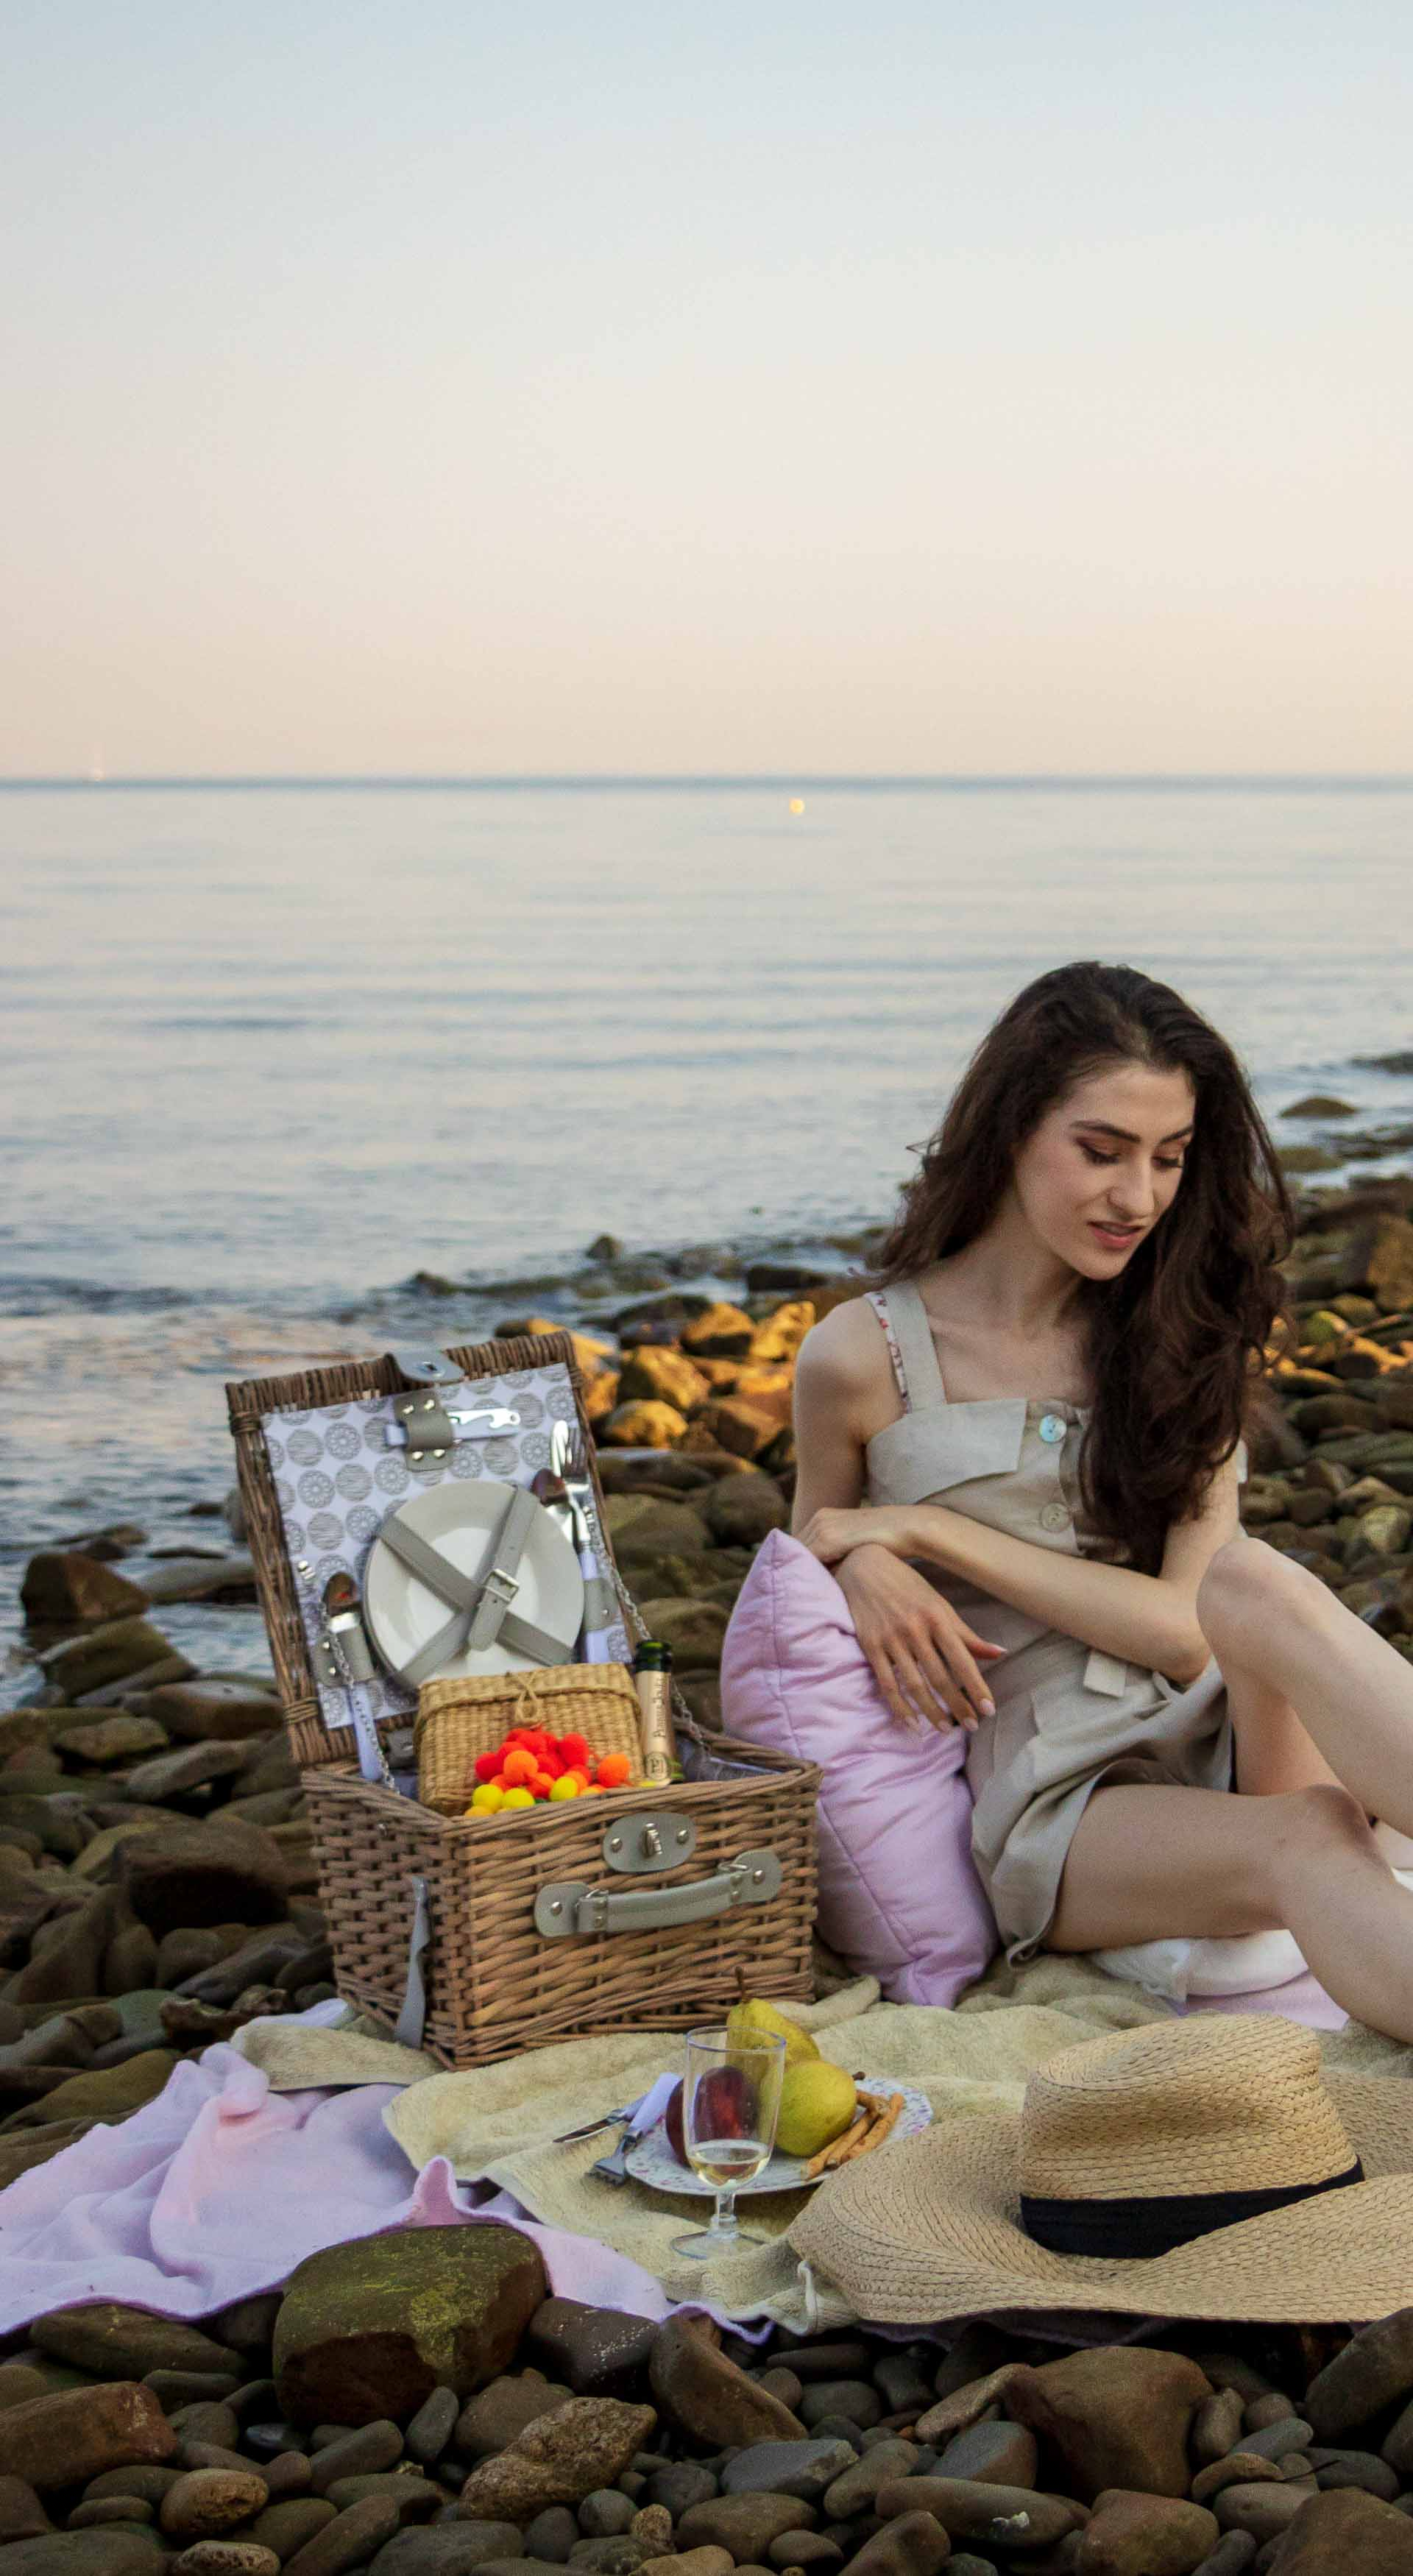 Slovenian Fashion Blogger Veronika Lipar of Brunette from Wall wearing beige linen crop top, paper bag linen shorts, luxe pool slides, large straw hat, Nannacay basket bag while sitting on a picnic blanket, having beach picnic